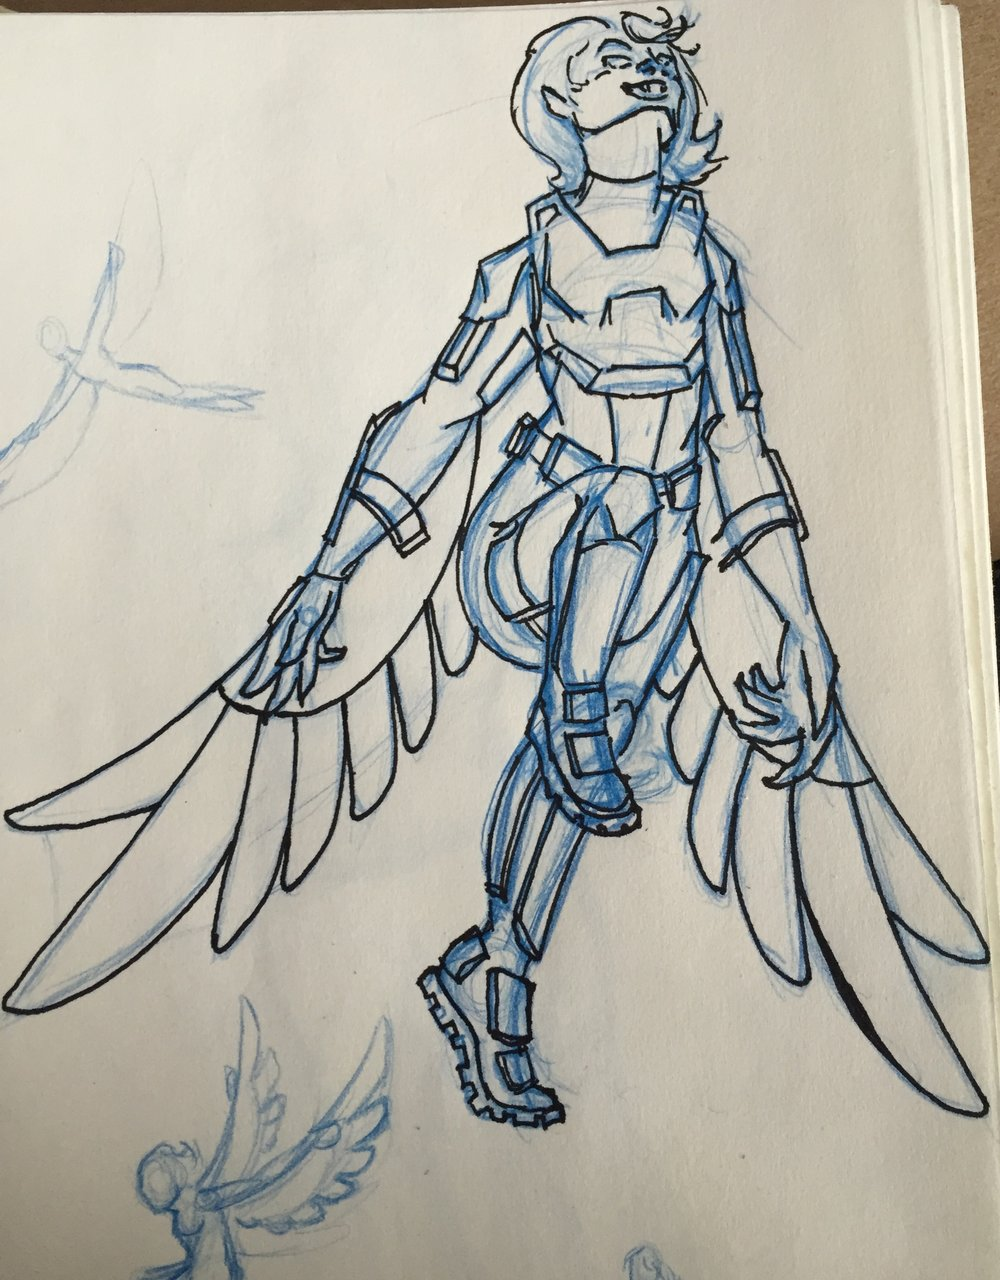 Flight armor concept (inspired by The Falcon)